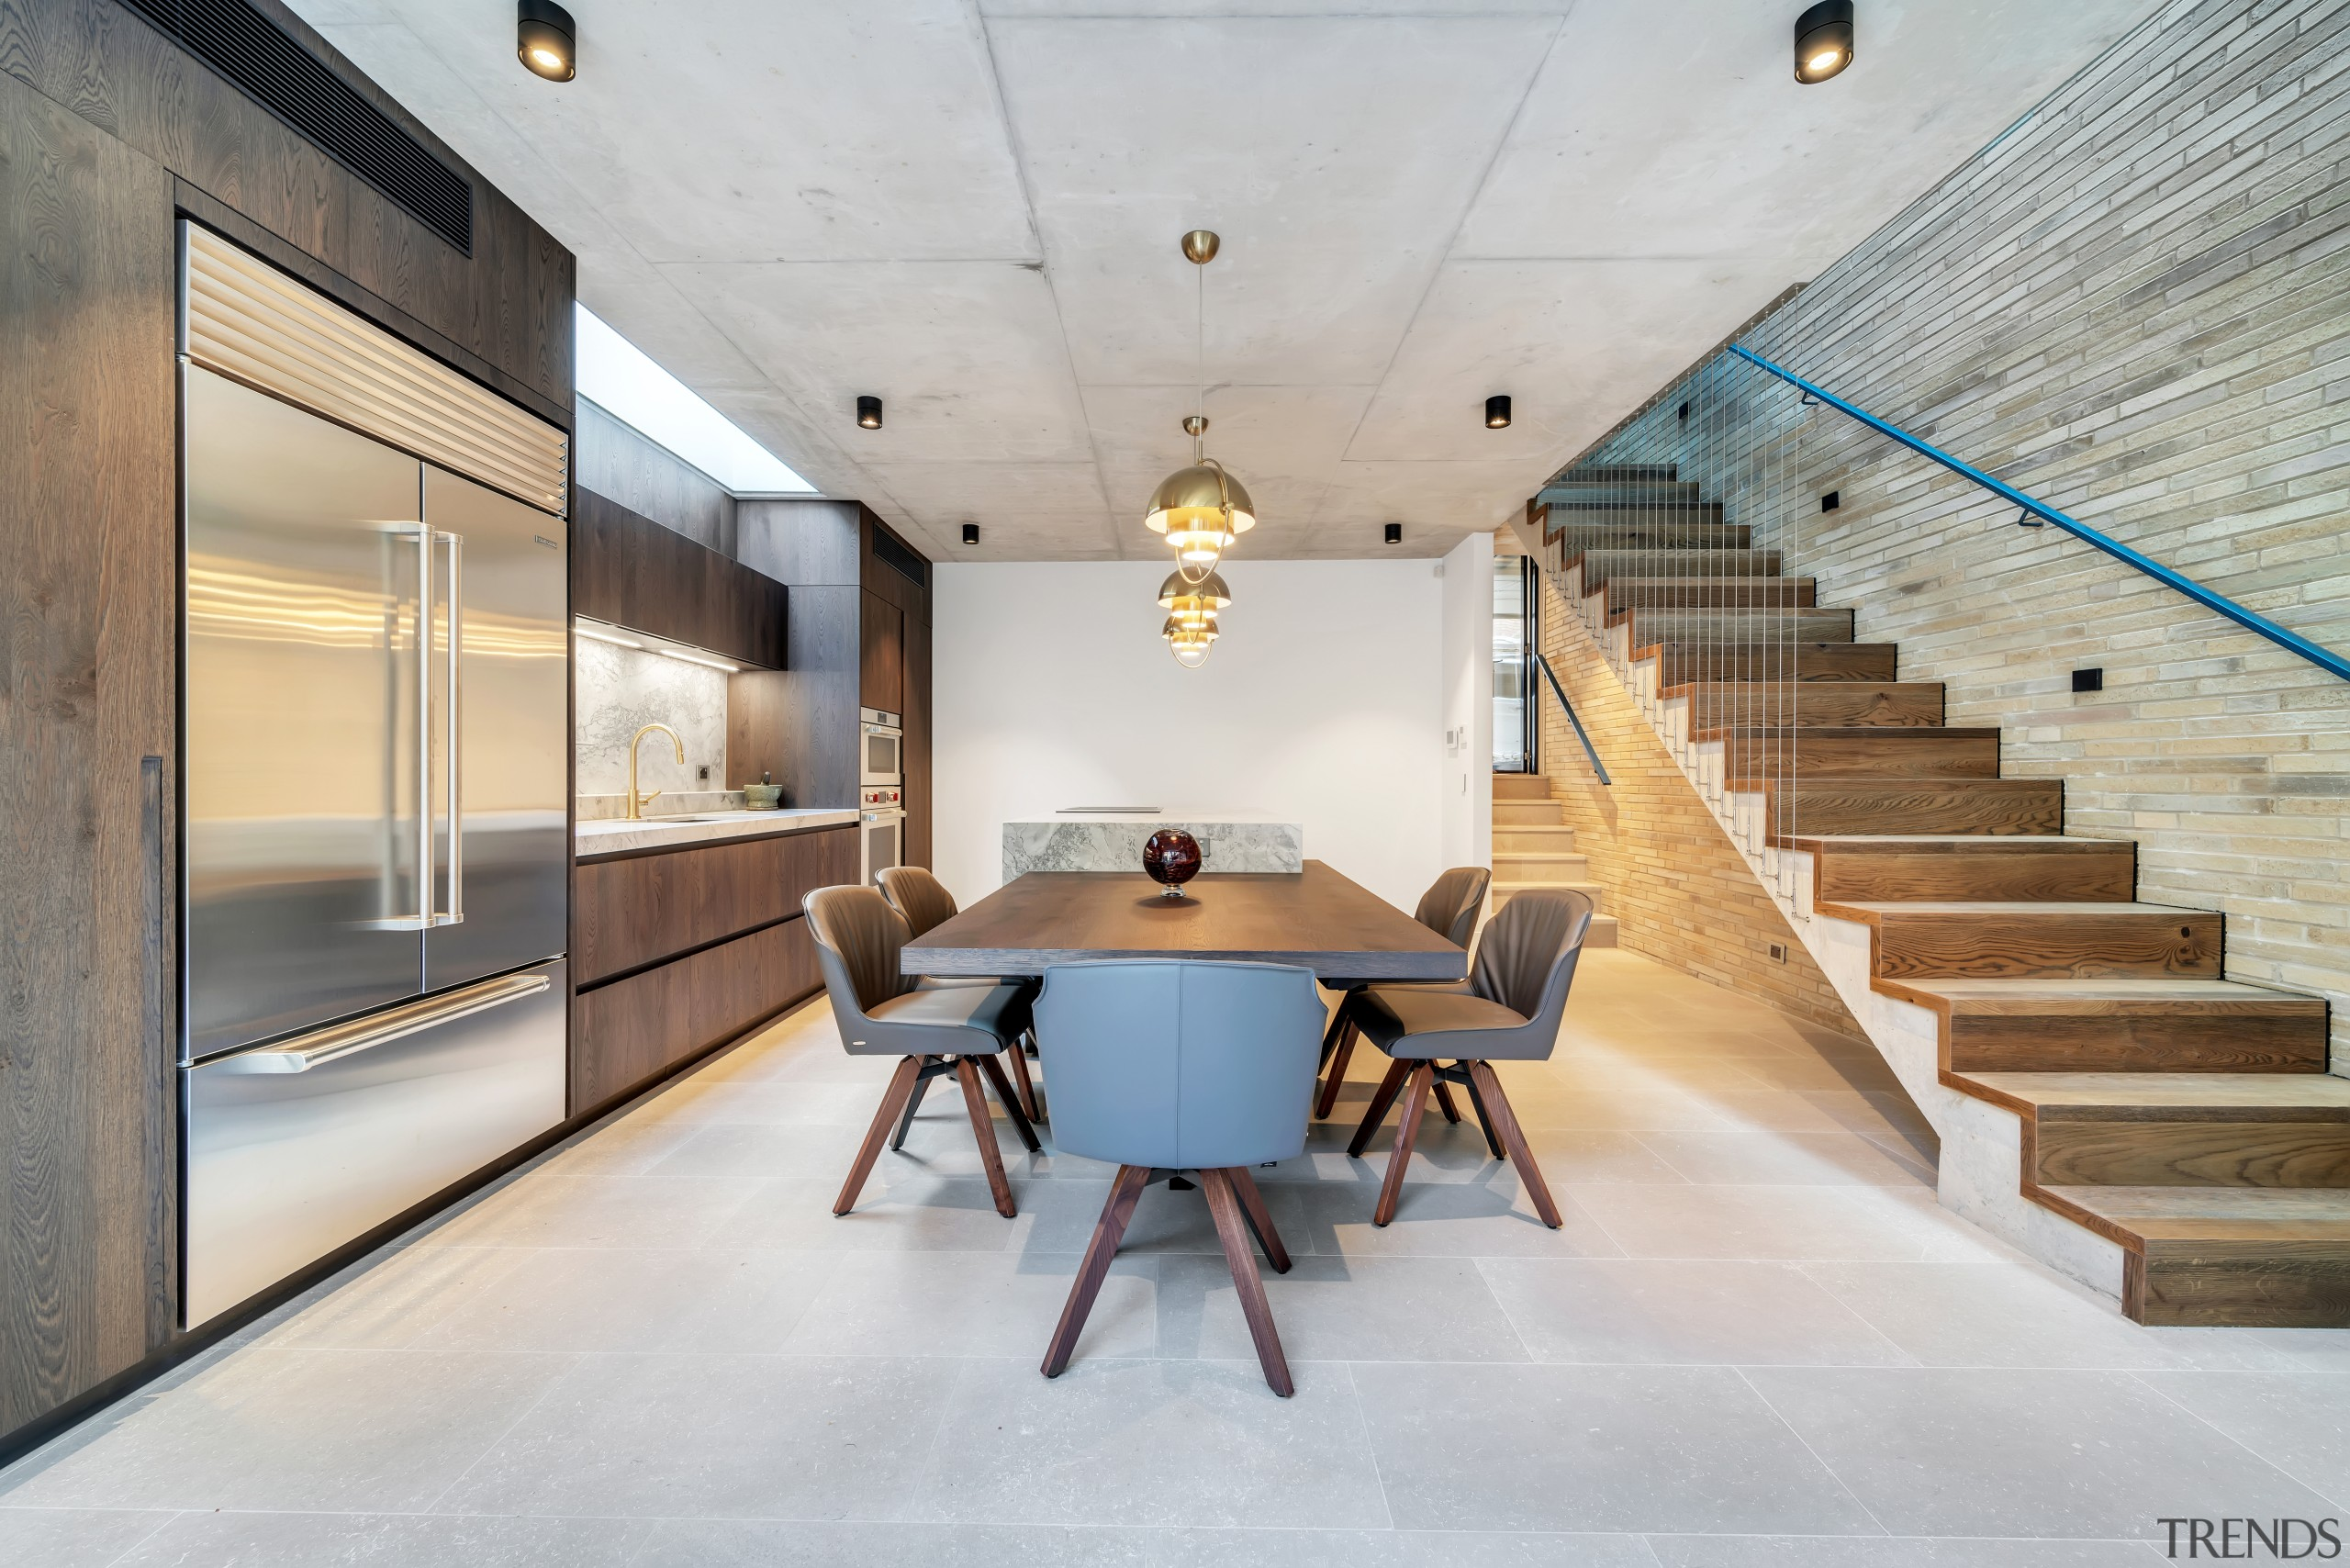 From this angle, this kitchen's cantilevered island with